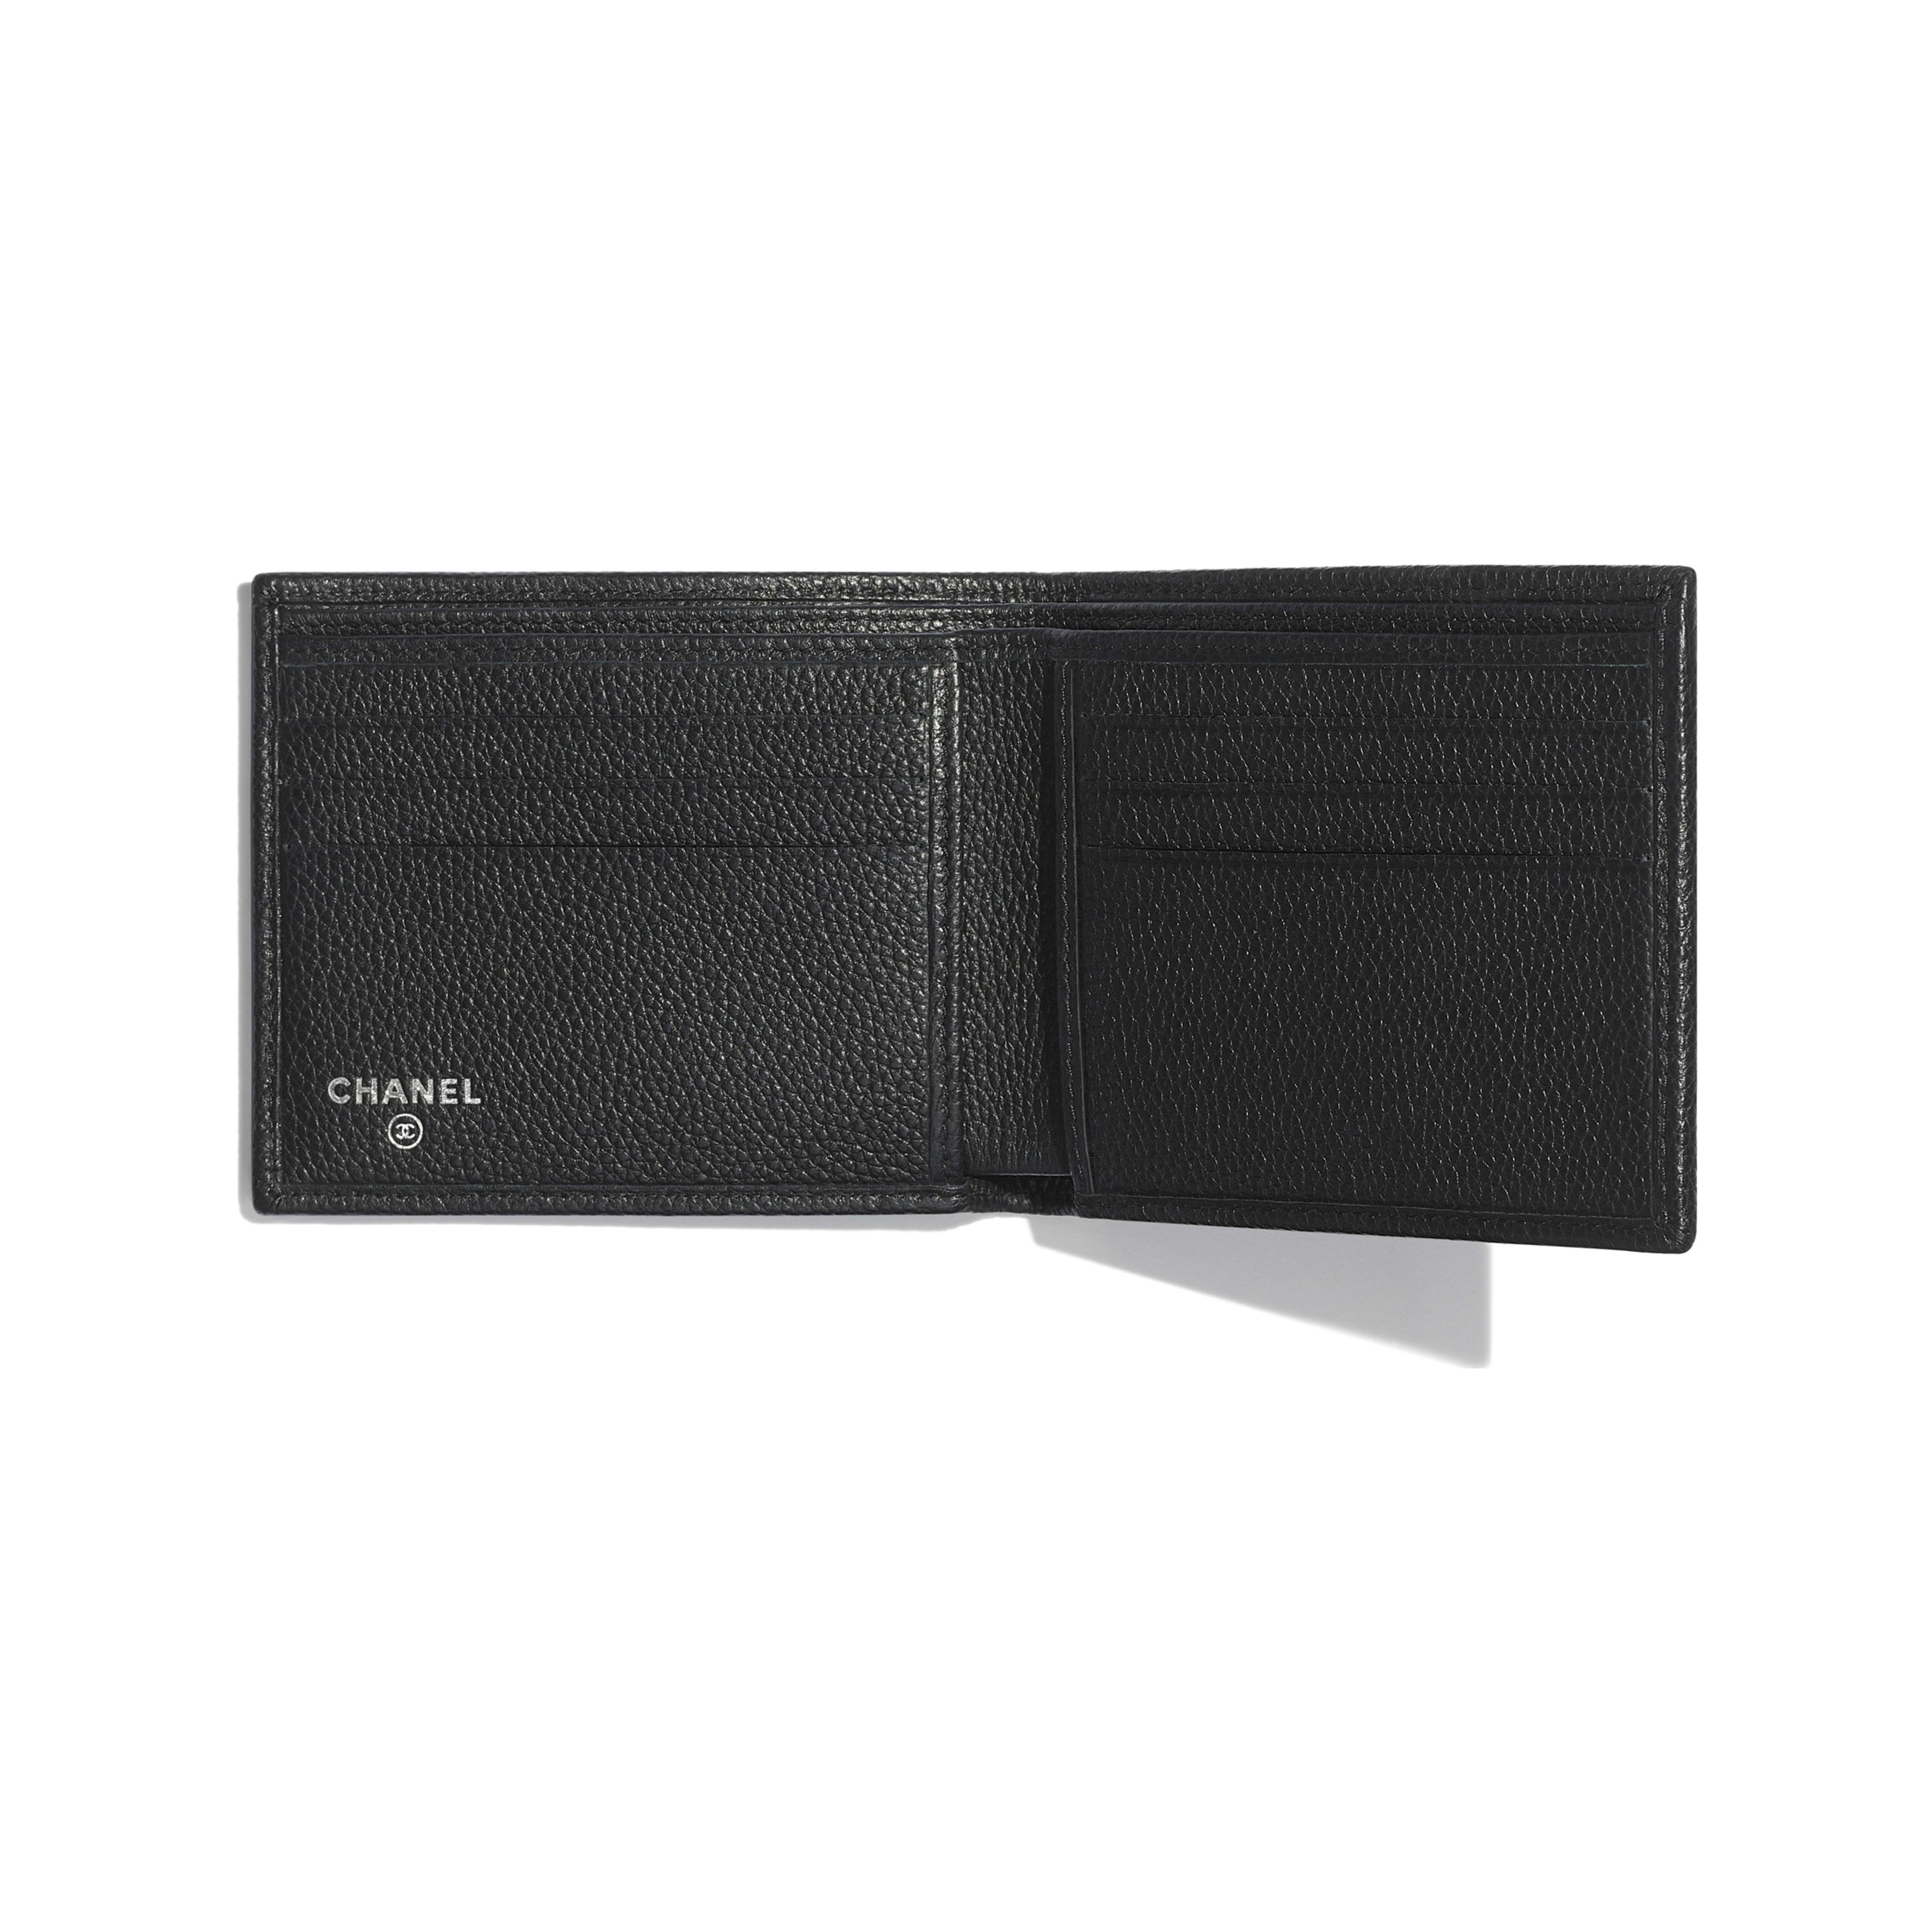 Small Flap Wallet - Black - Grained Calfskin & Ruthenium-Finish Metal - Other view - see full sized version